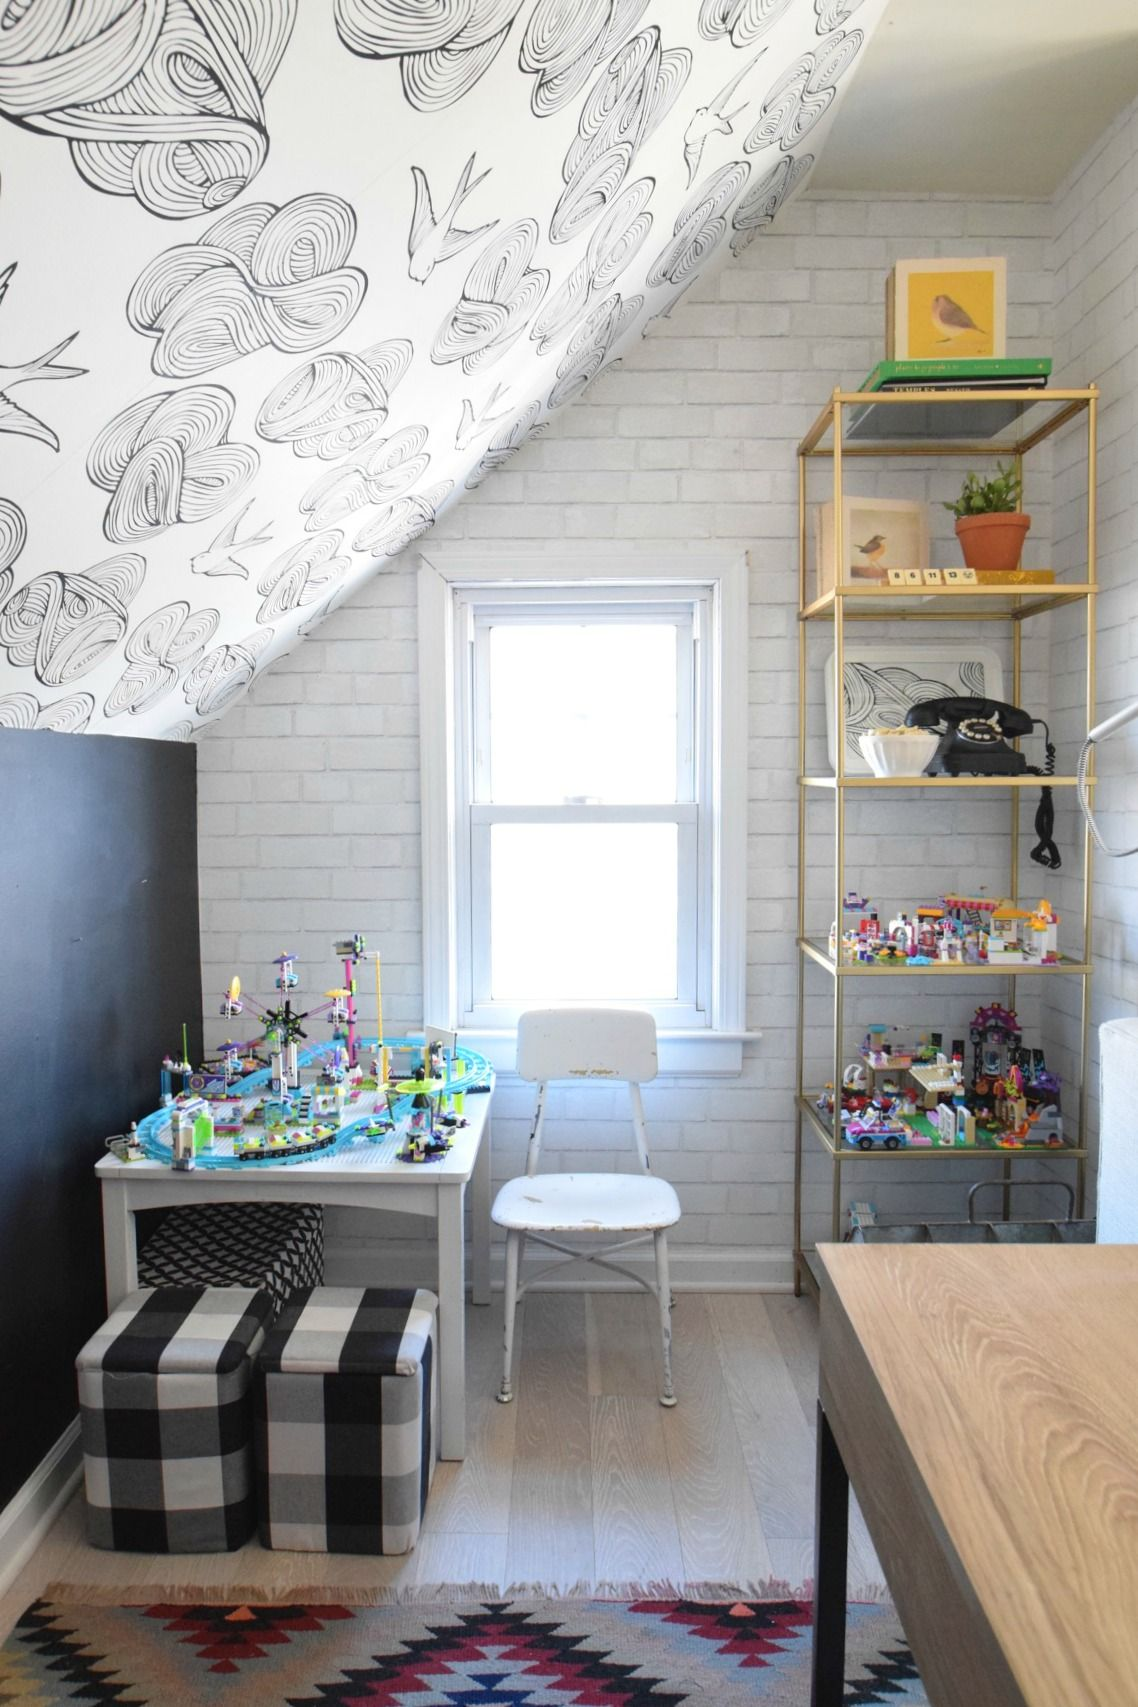 Daydream Wallpaper And The Legos Nesting With Grace Brick Wall Wallpaper Guest Room Office Slanted Walls